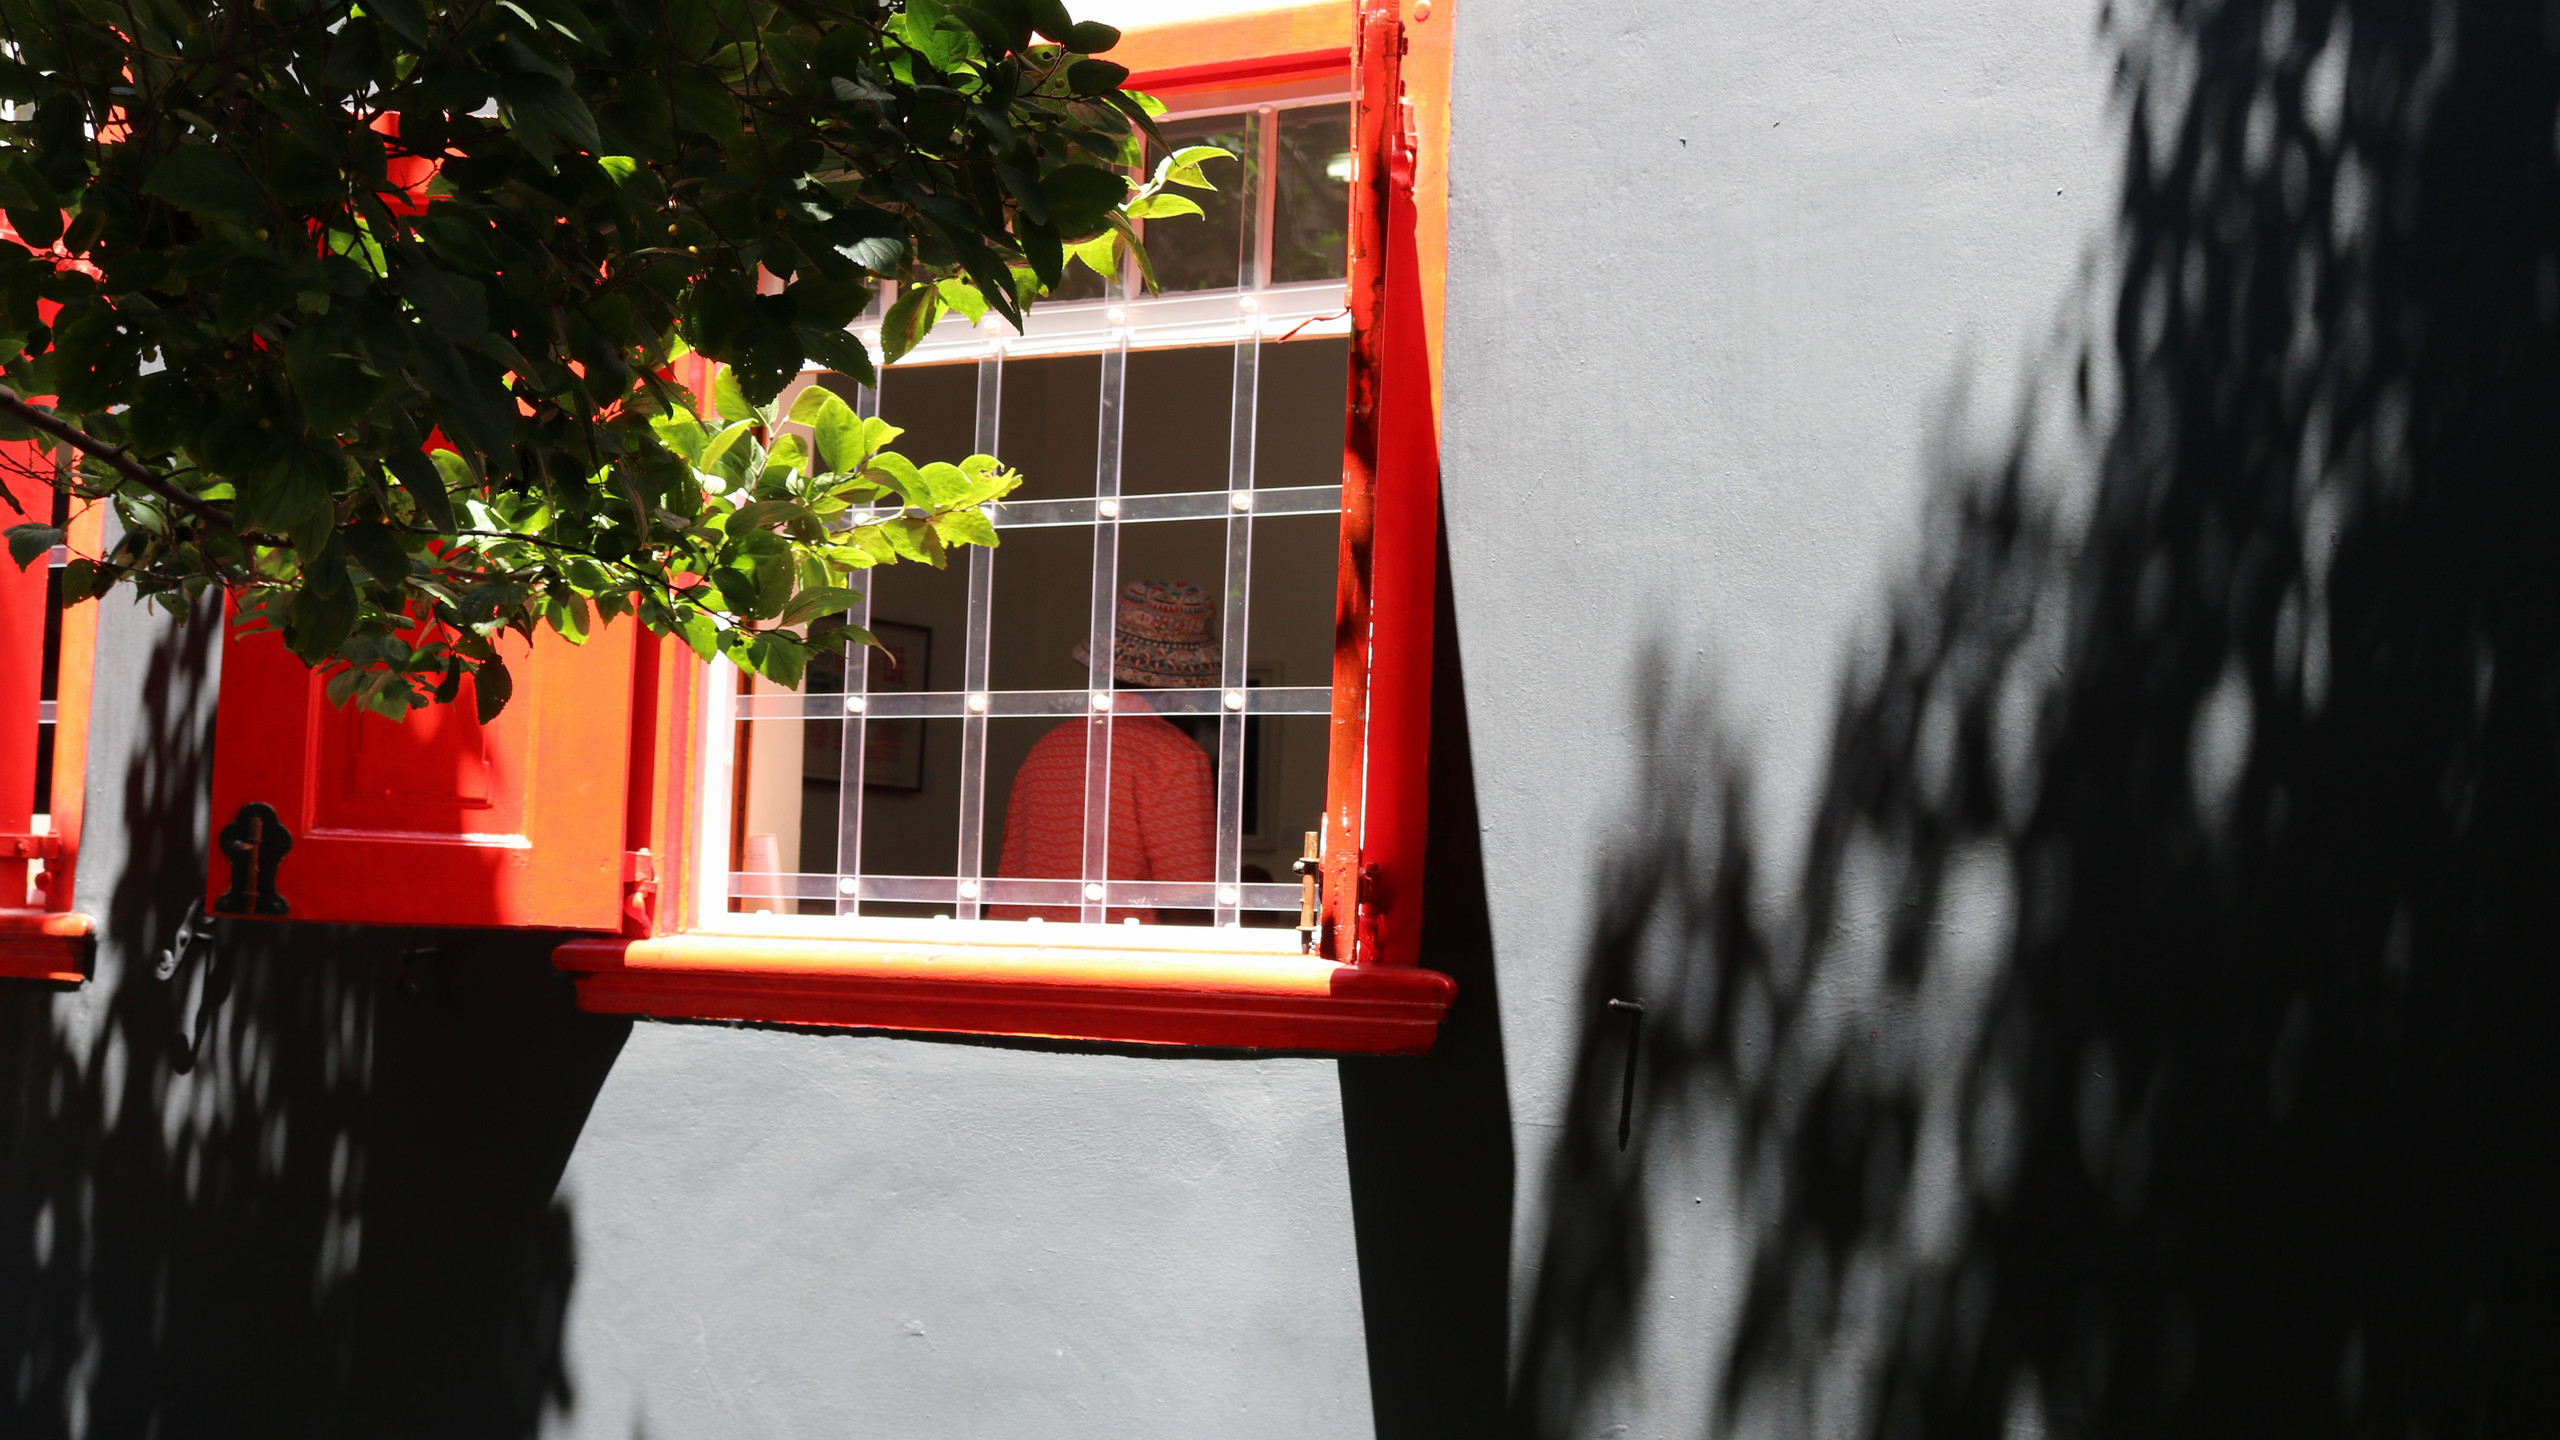 Can you see the woman in the perfect match to the window-colour?